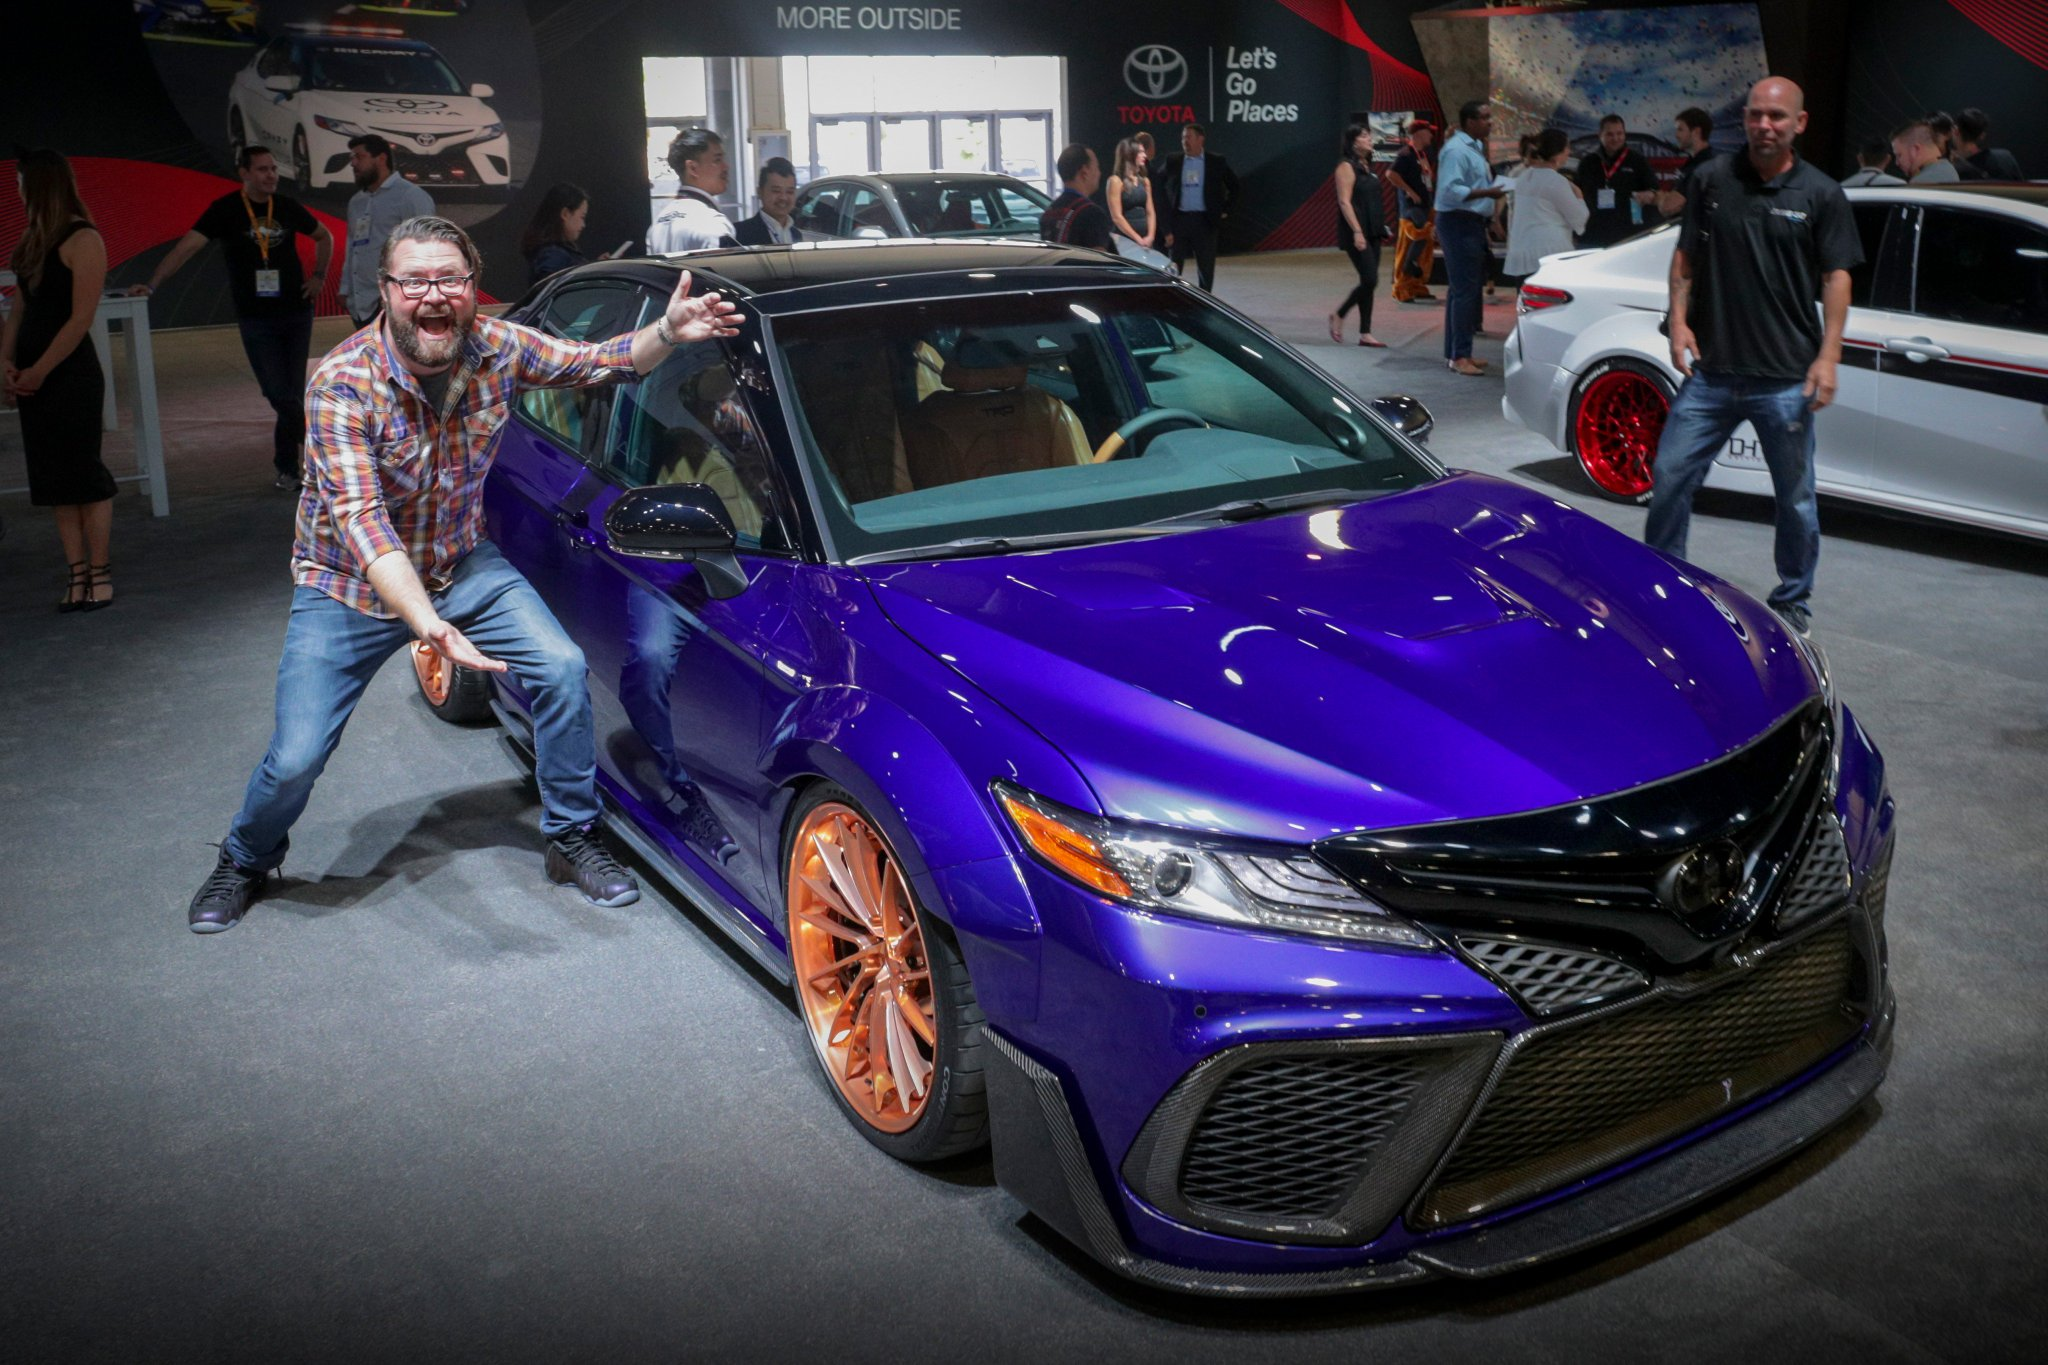 With state-of-the-art 3D printing, @RutledgeWood redefined style with his blurple #SEMA2017 #Camry build. https://t.co/ITghhFk6RN